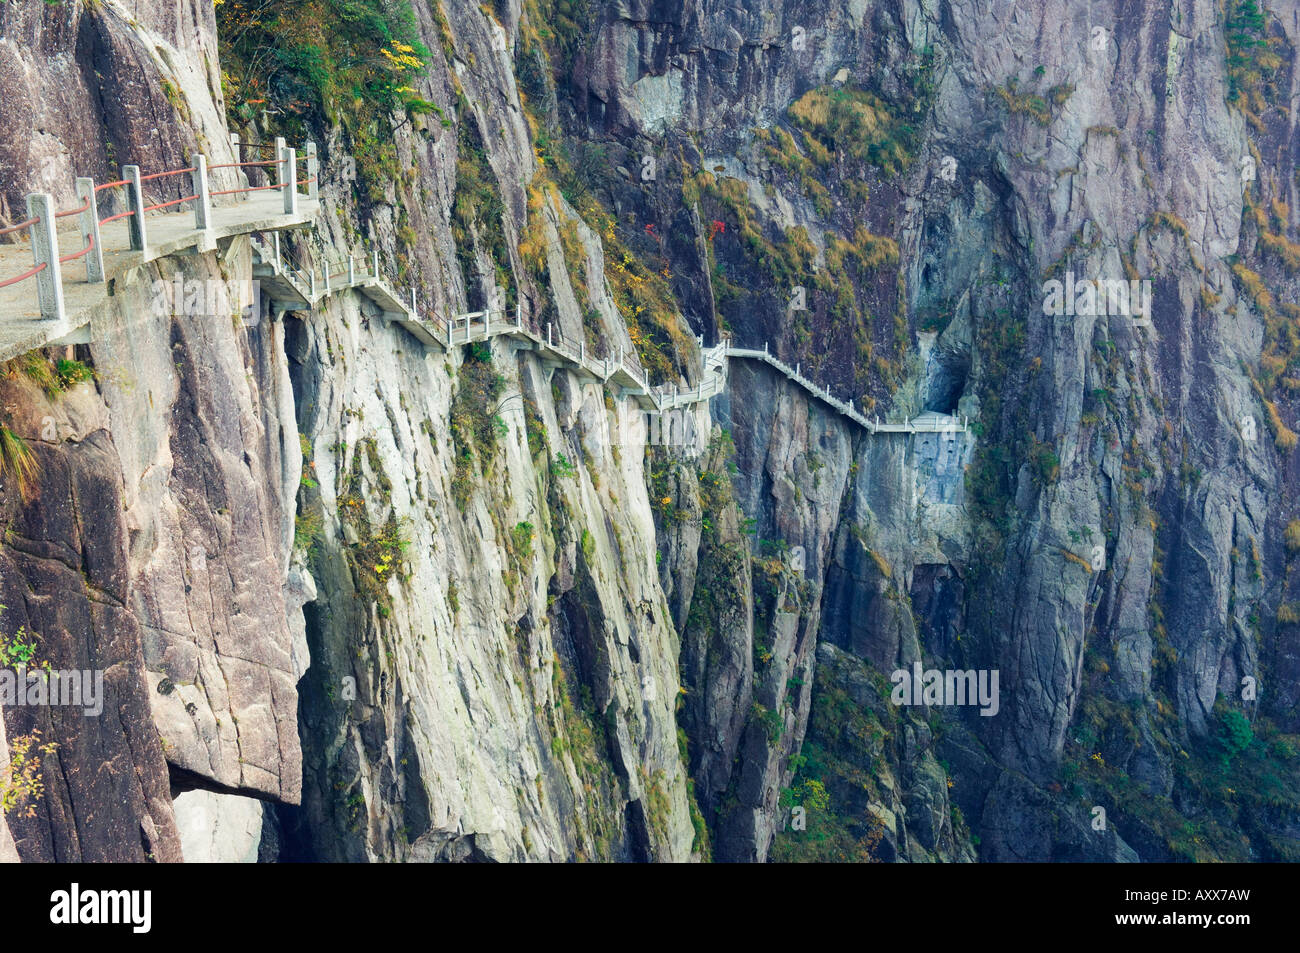 Footpath along rock face, White Cloud scenic area, Huang Shan (Yellow Mountain), Anhui Province, China Stock Photo